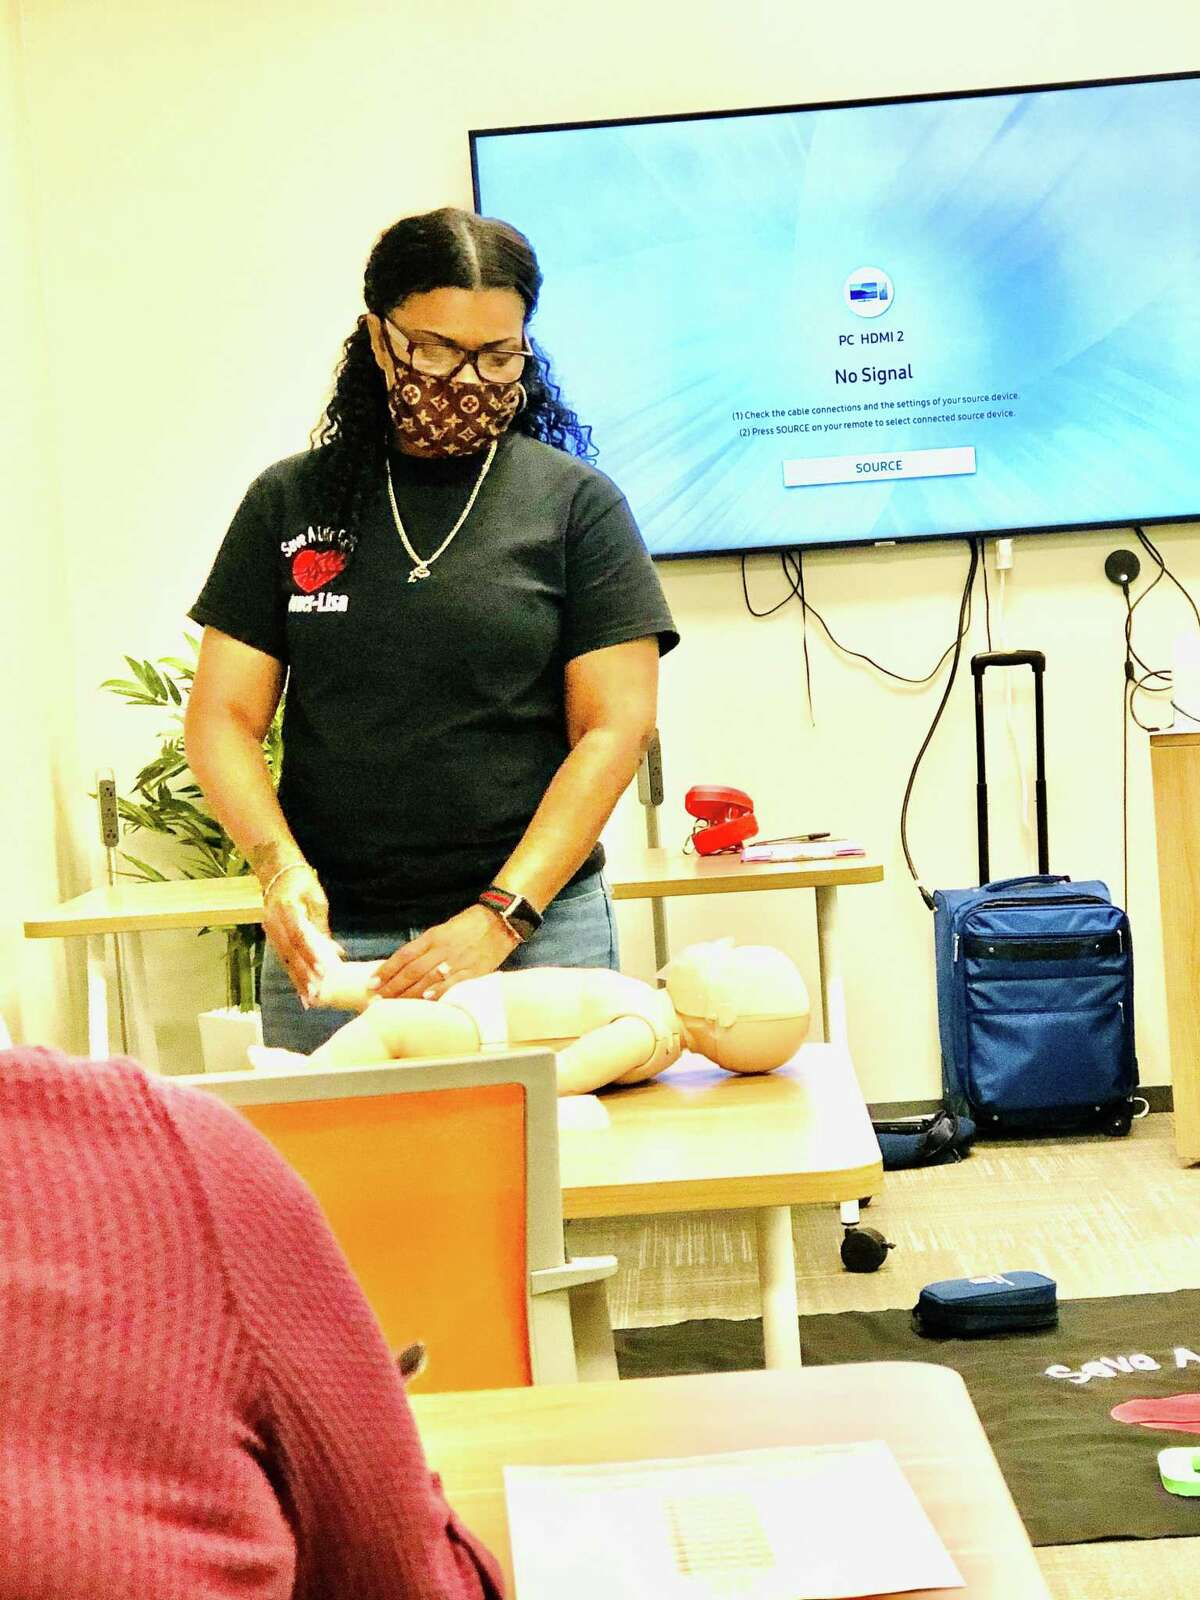 Belisia Roberts-Brandley founded Save a Life CPR in February 2017 as a mobile business providing CPR training to individuals and groups. She has an office at Office Evolution and often does training sessions there.